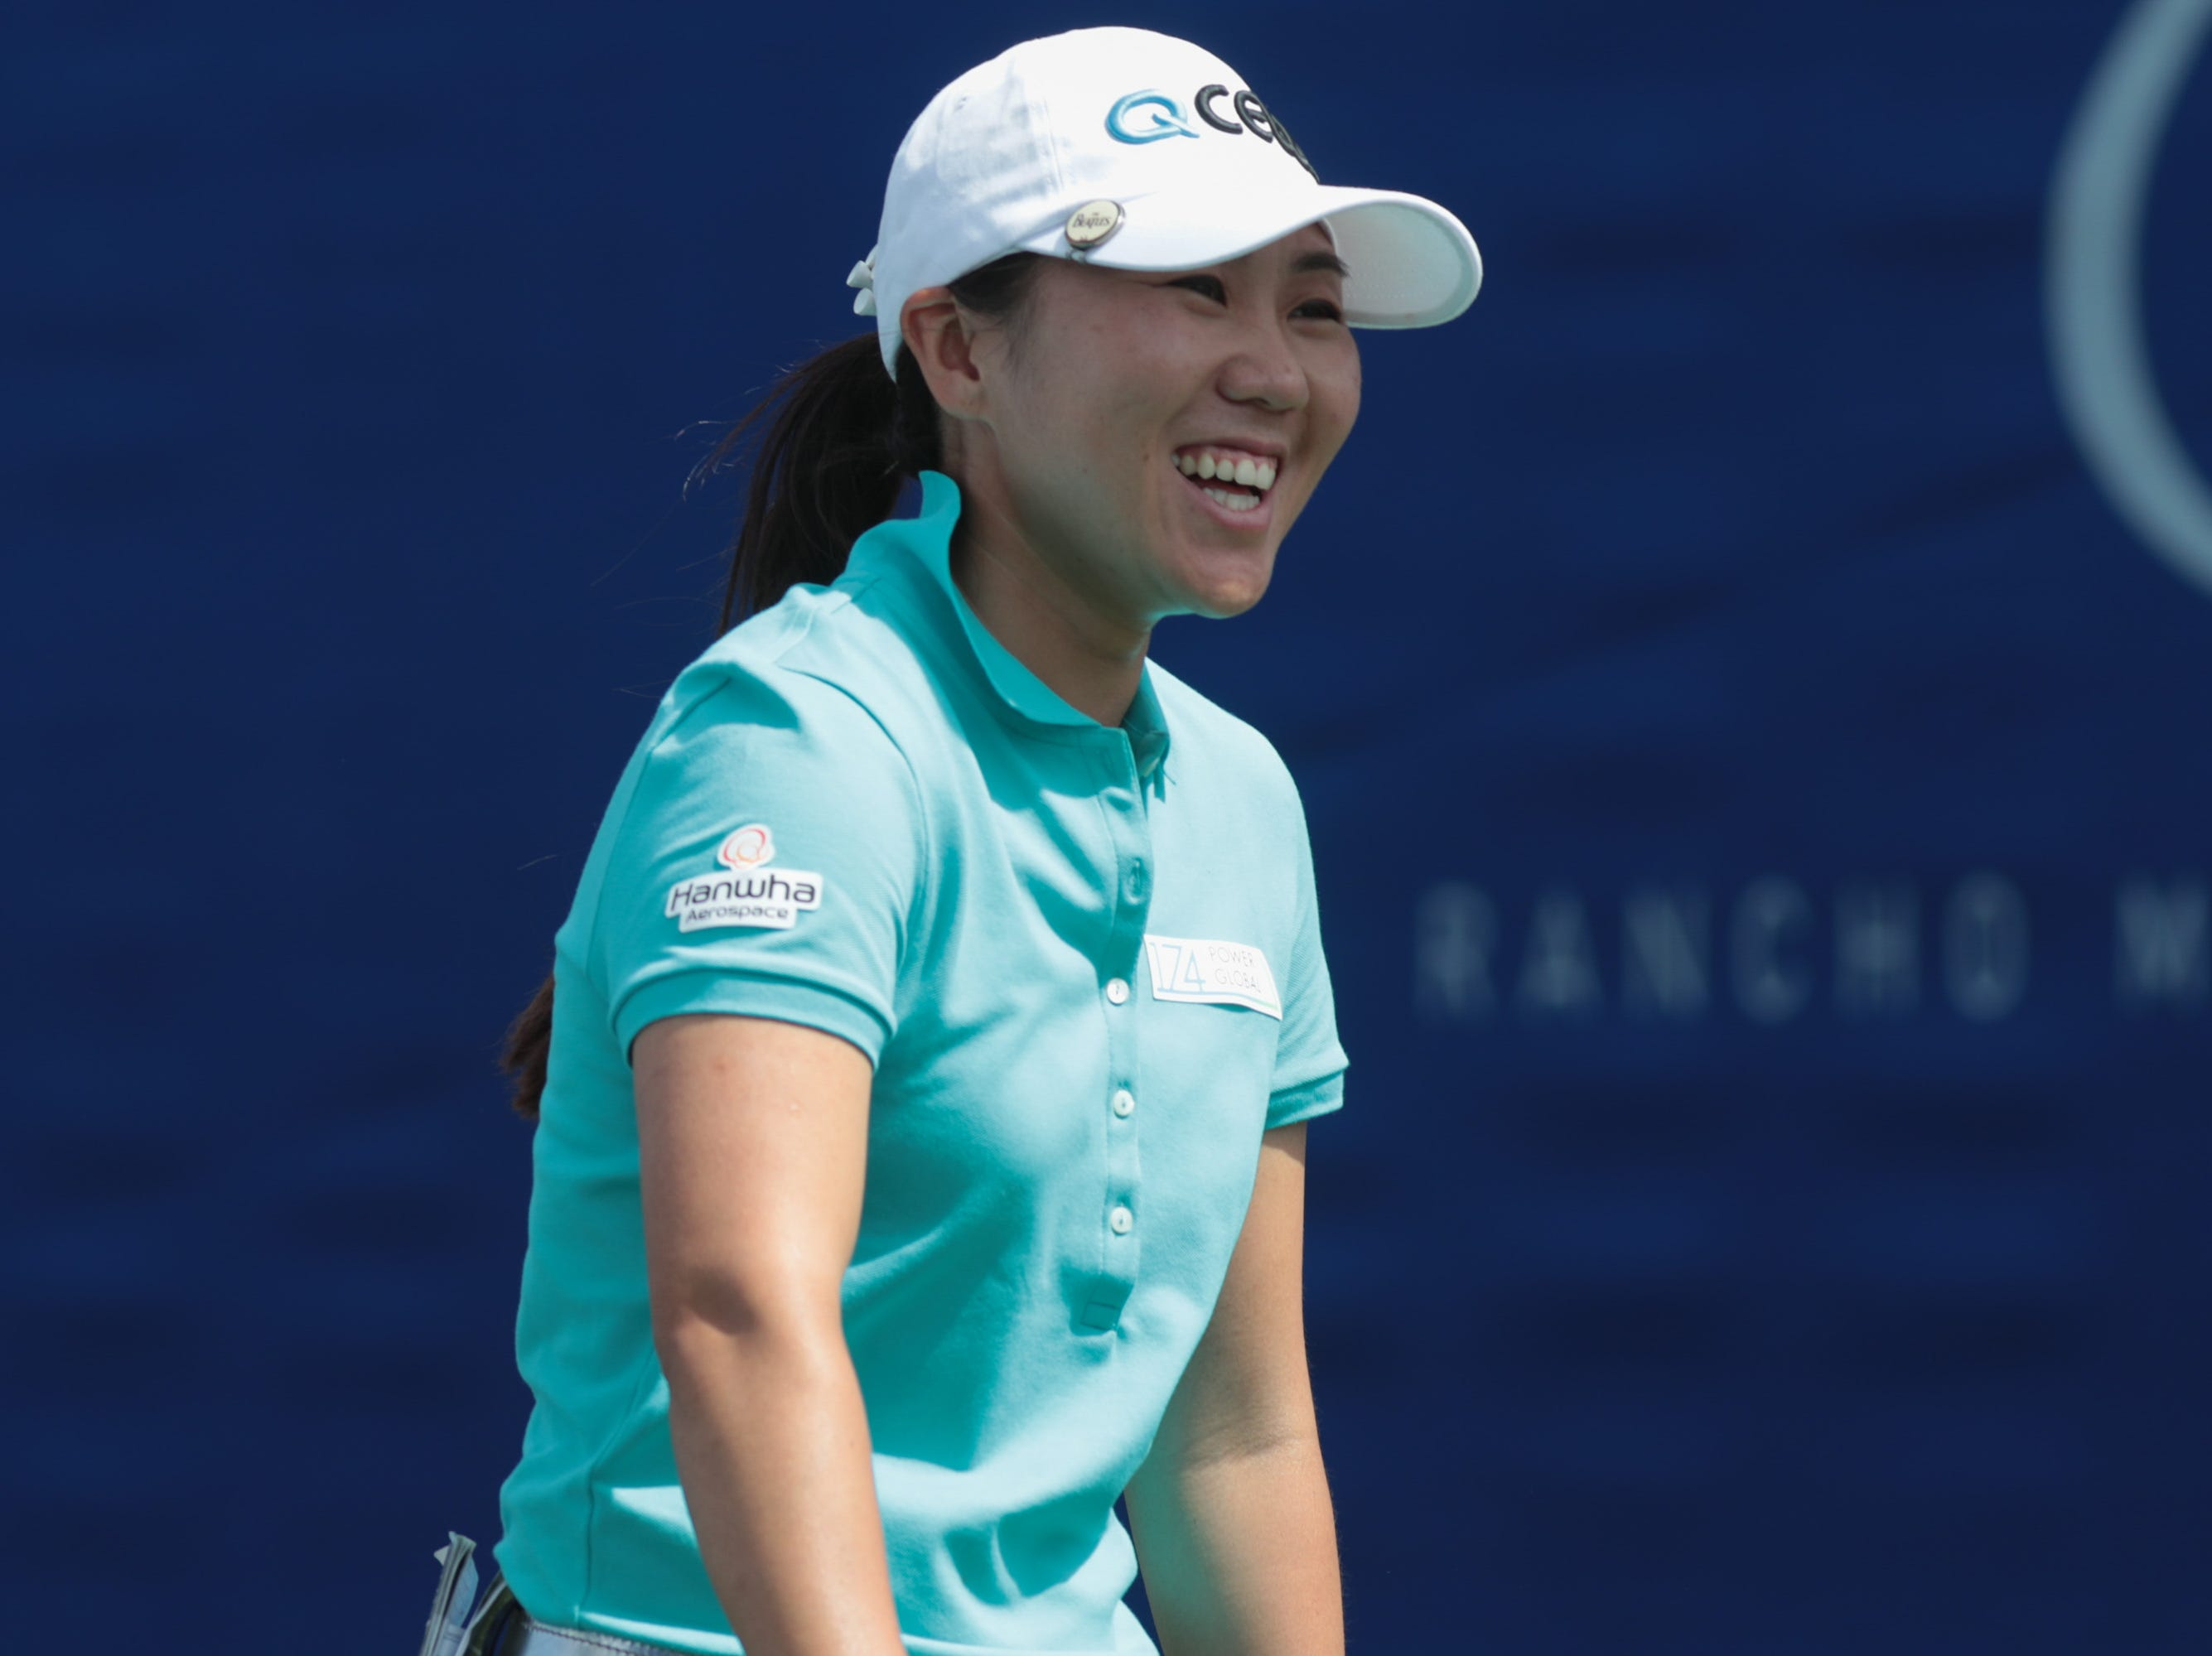 In-Kyung Kim exchanges a laugh with her caddie after teeing off on the first hole of the Dinah Shore Course at the ANA Inspiration, Rancho Mirage, Calif., April 6, 2019.